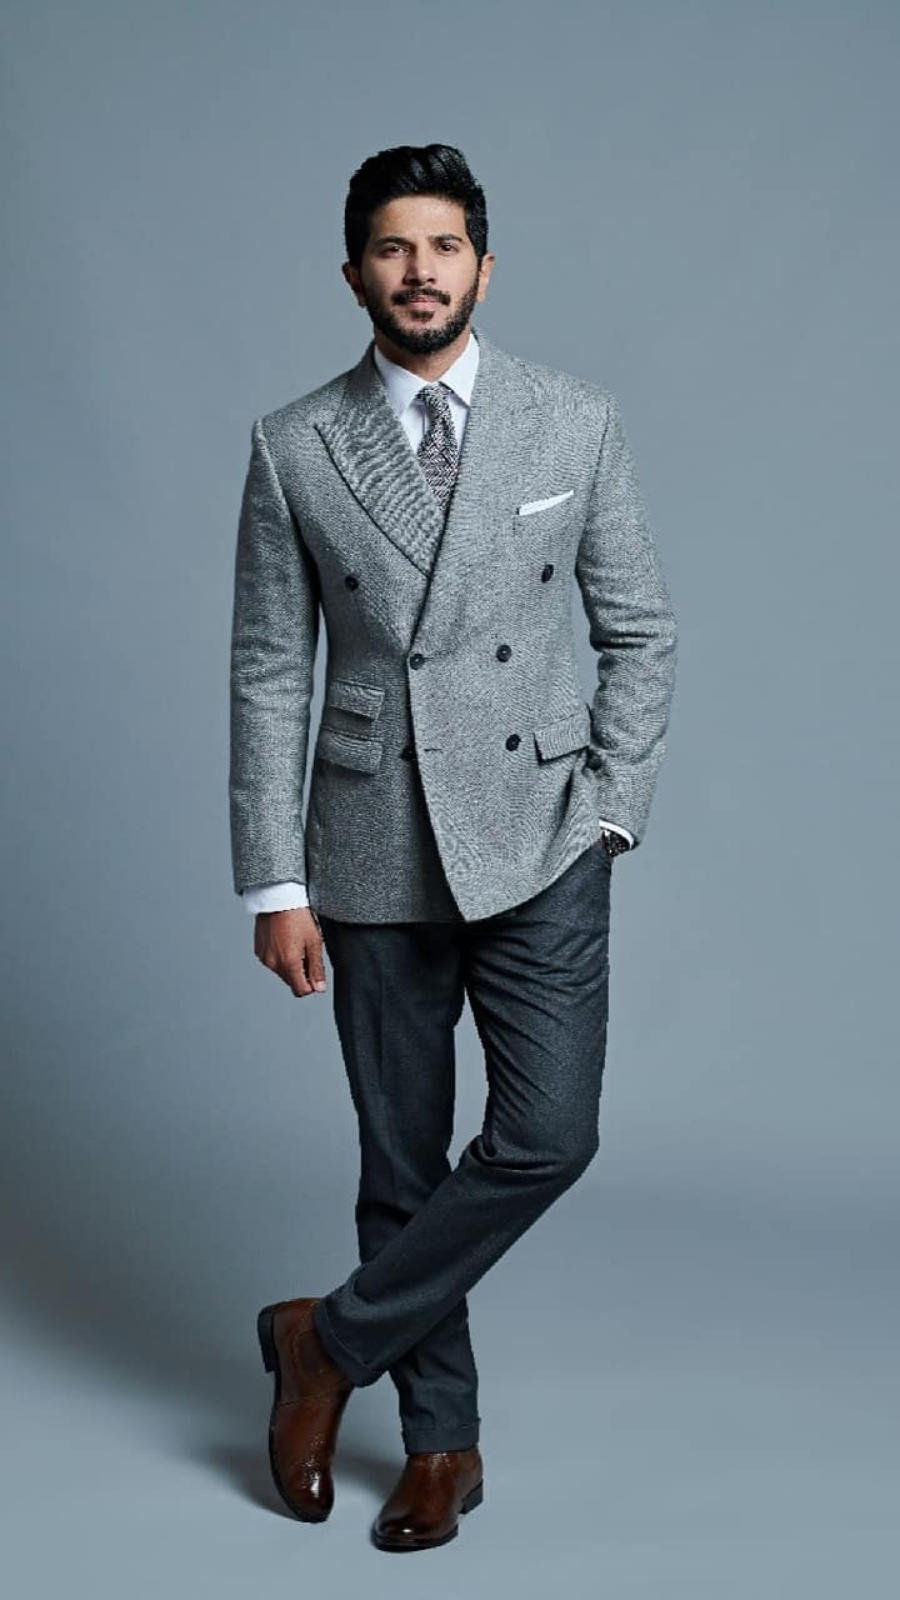 Tailored suits can work wonders